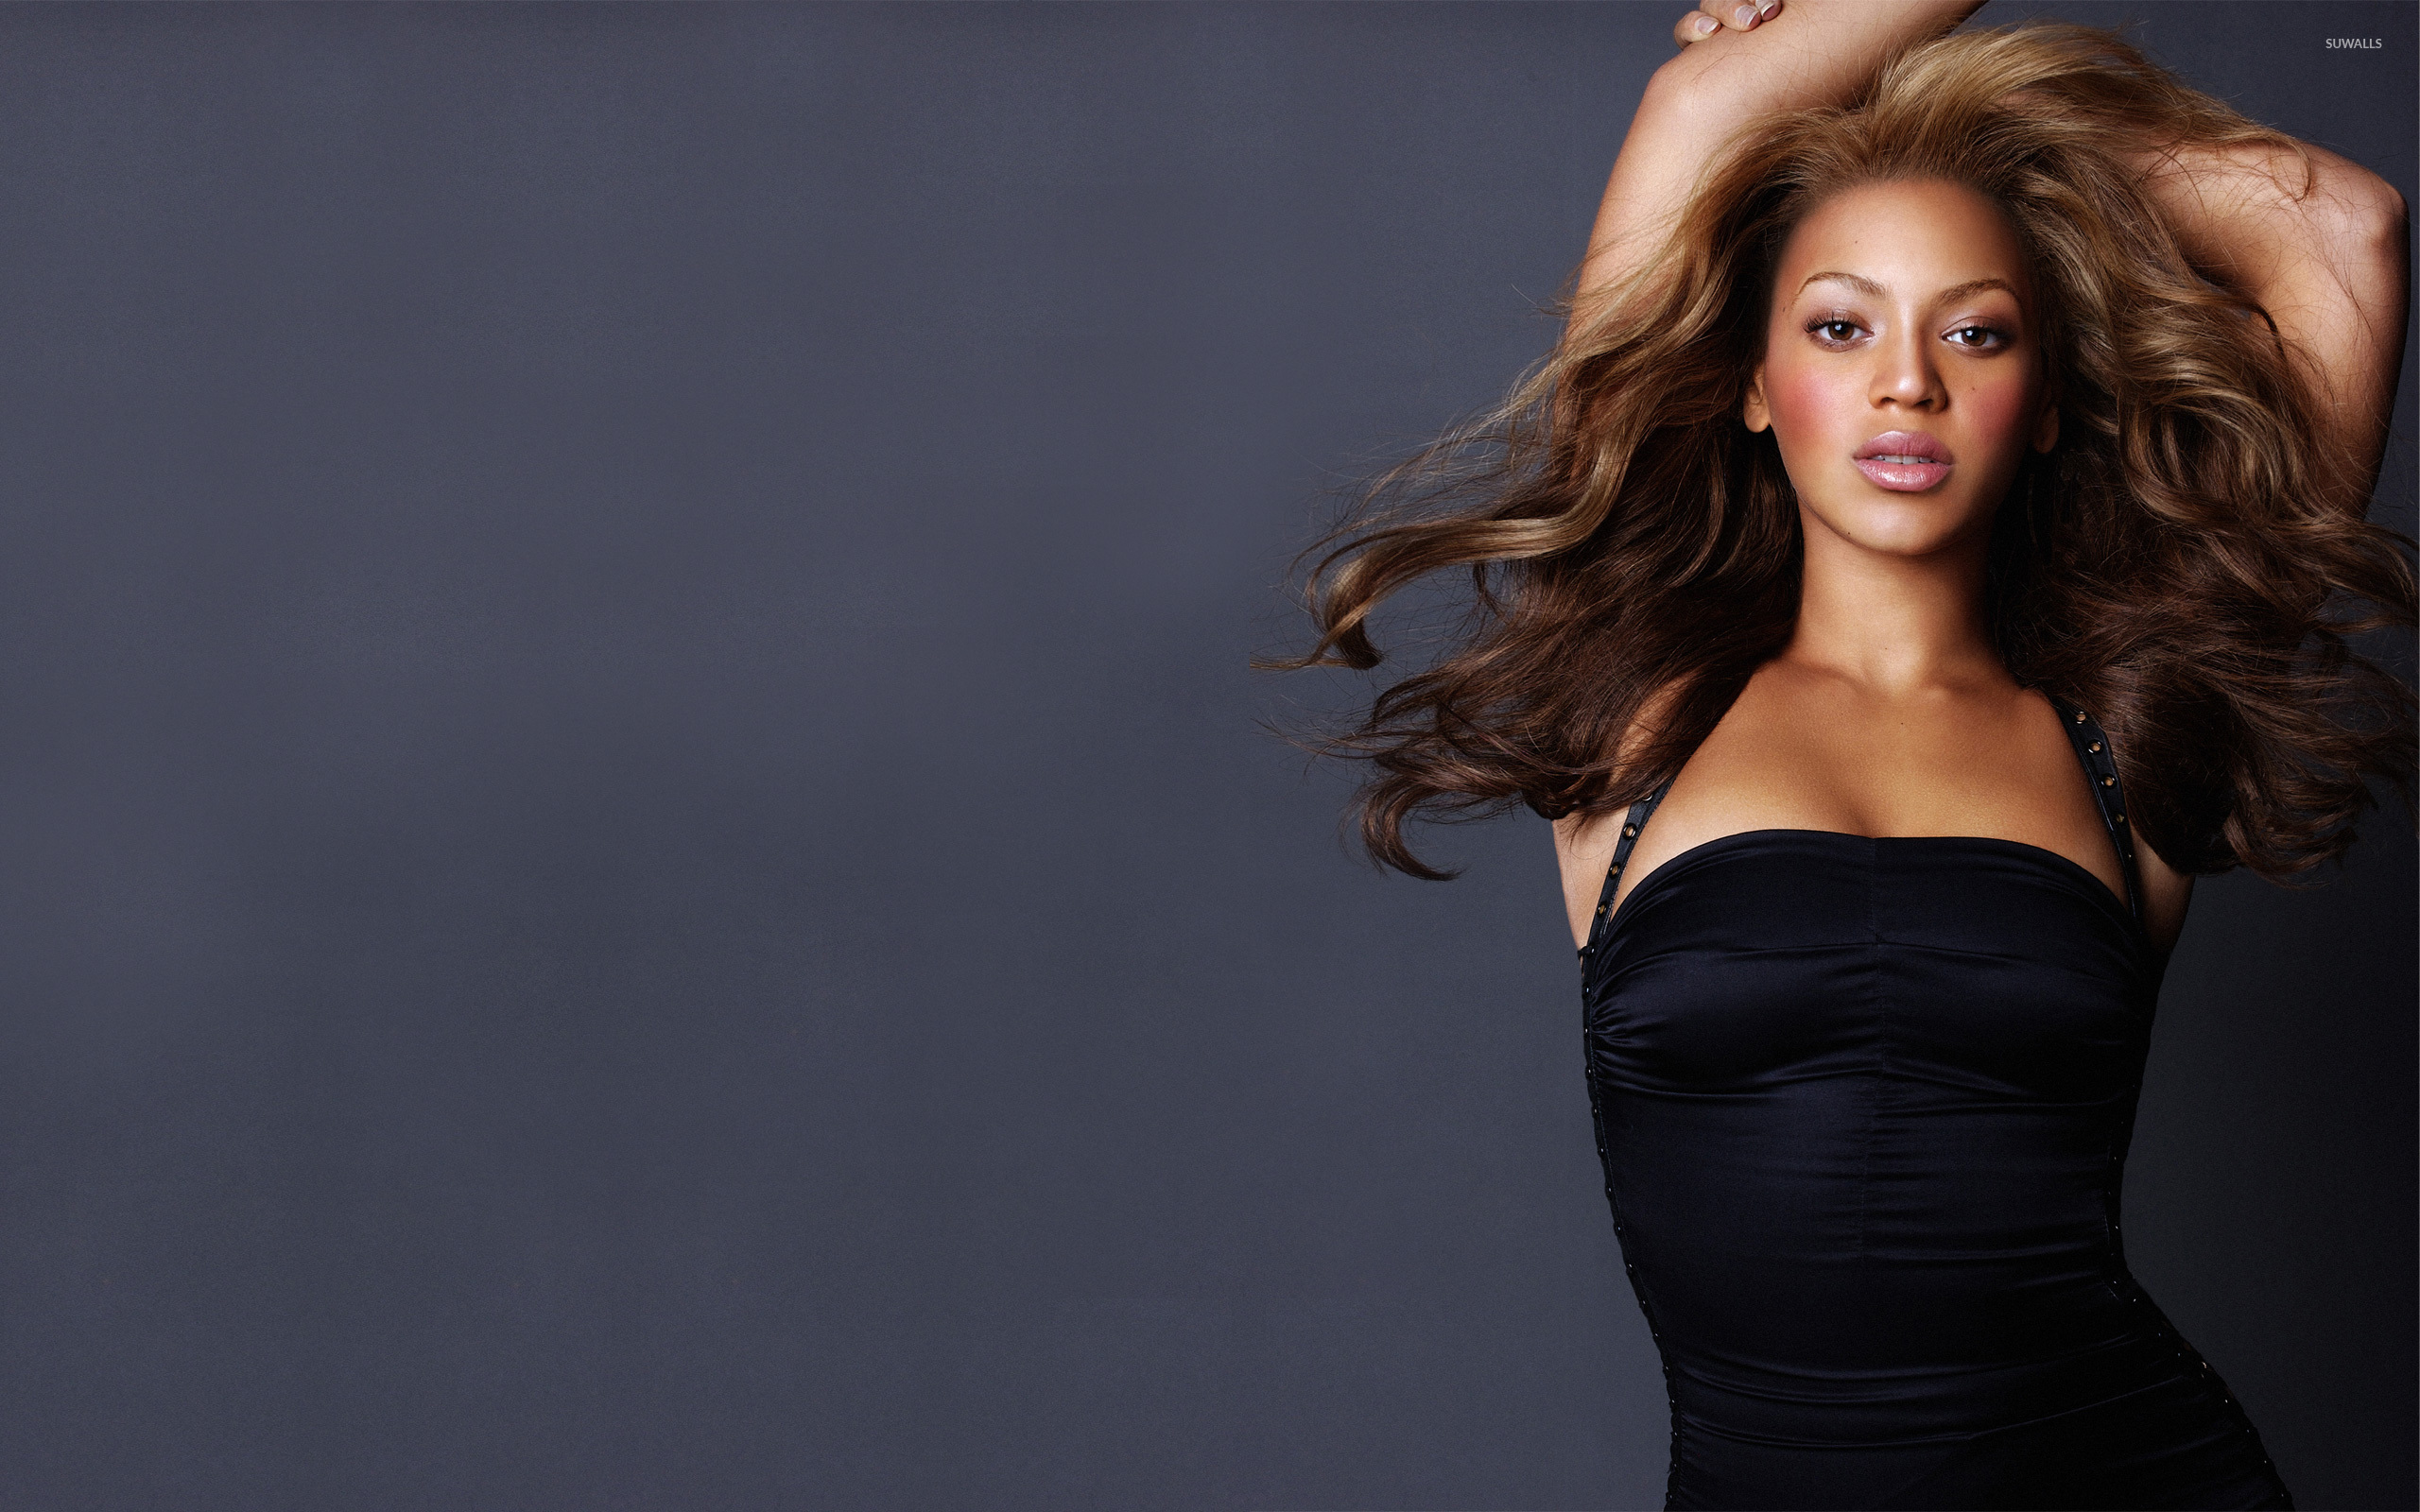 beyonce knowles desktop background - photo #48